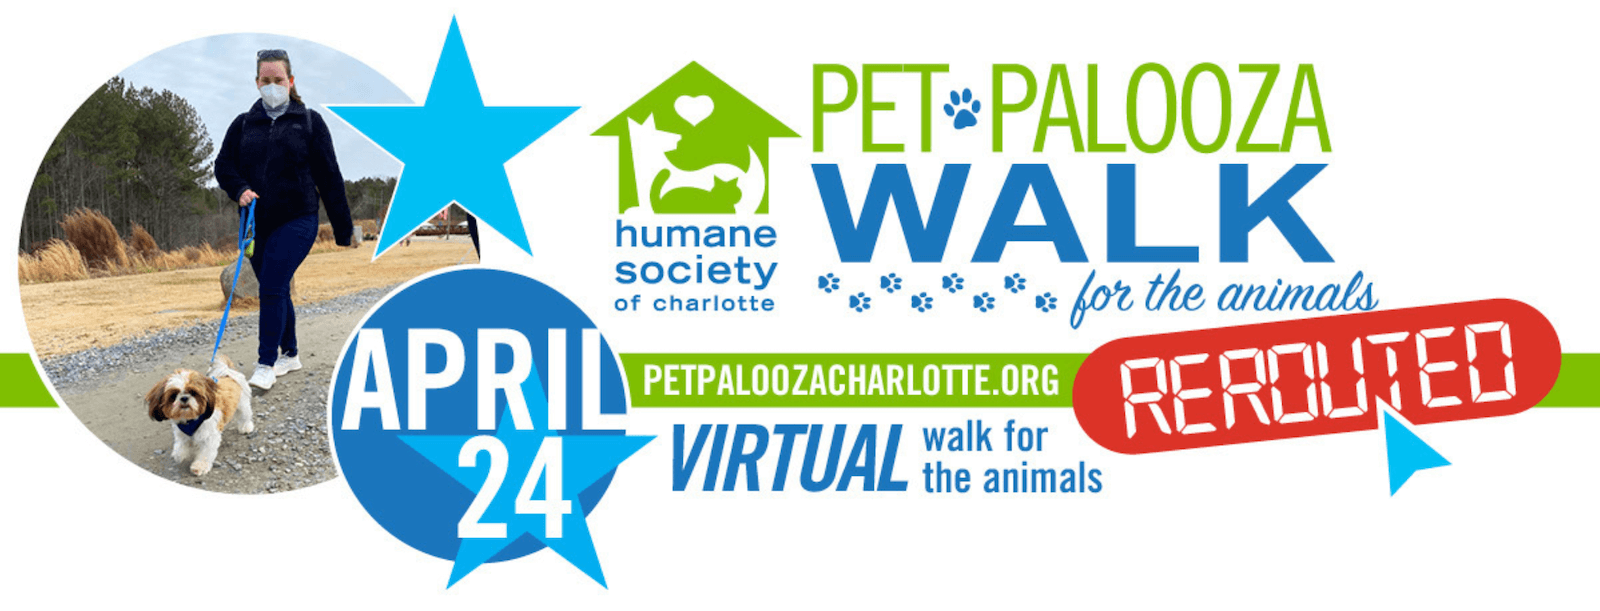 Screenshot of the website header of the Pet Palooza Rerouted microsite, which informs people about the date of the event.